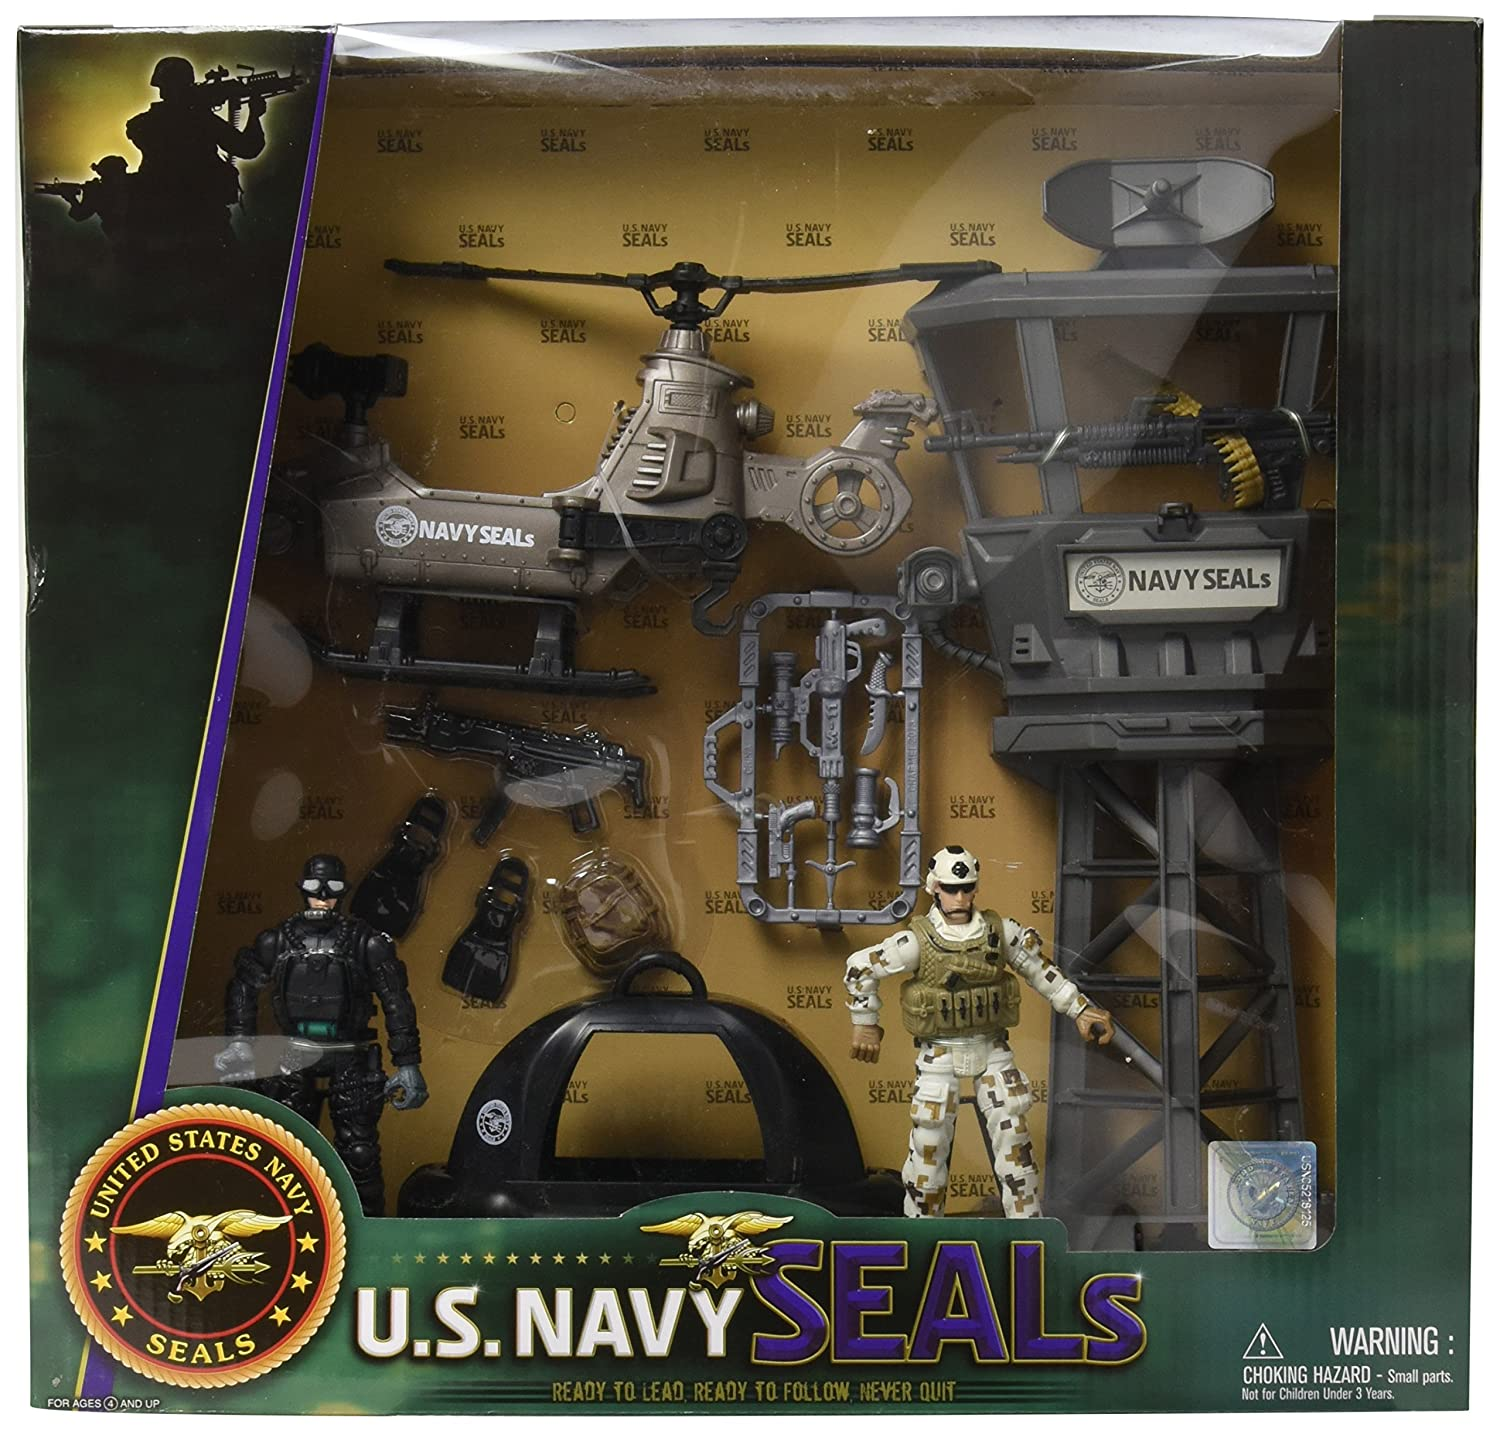 Excite U.S Navy Seals Observation Tower Playset FLAHC 5659